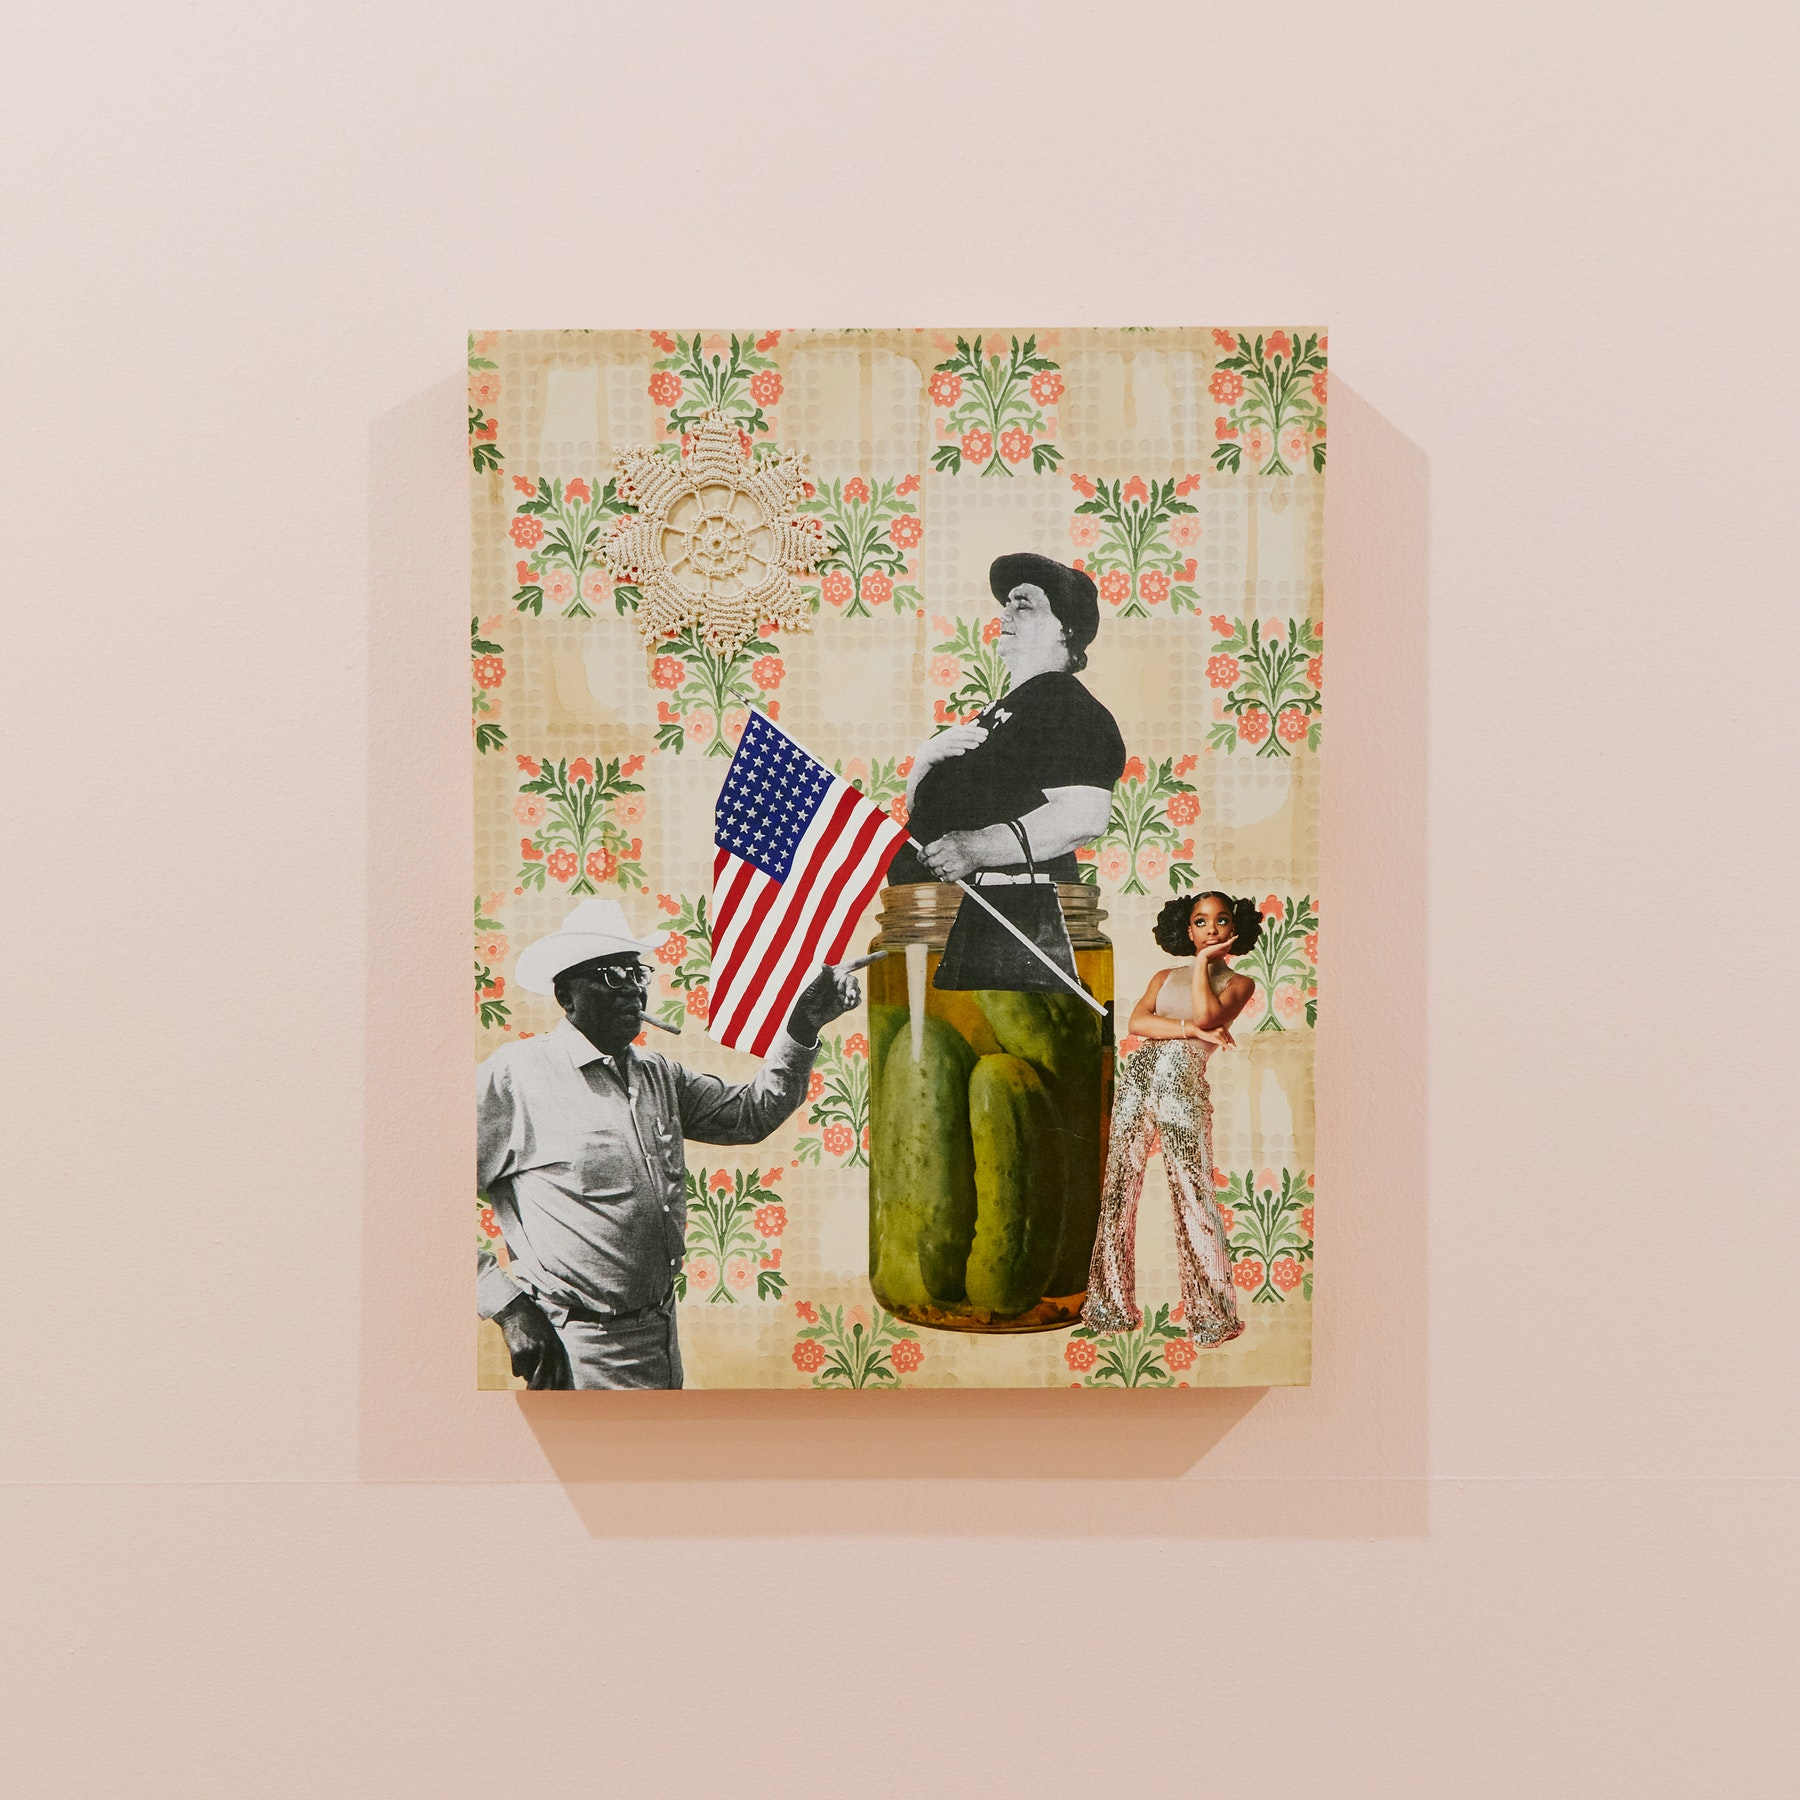 "Genevieve Gaignard ""America — In a Pickle,"" 2020 Mixed media on panel 16 x 20 x 1.5"" [HxWxD] (40.64 x 50.8 x 3.81 cm) Inventory #GEN326 Courtesy of the artist and Vielmetter Los Angeles Photo credit: Megan Haley"